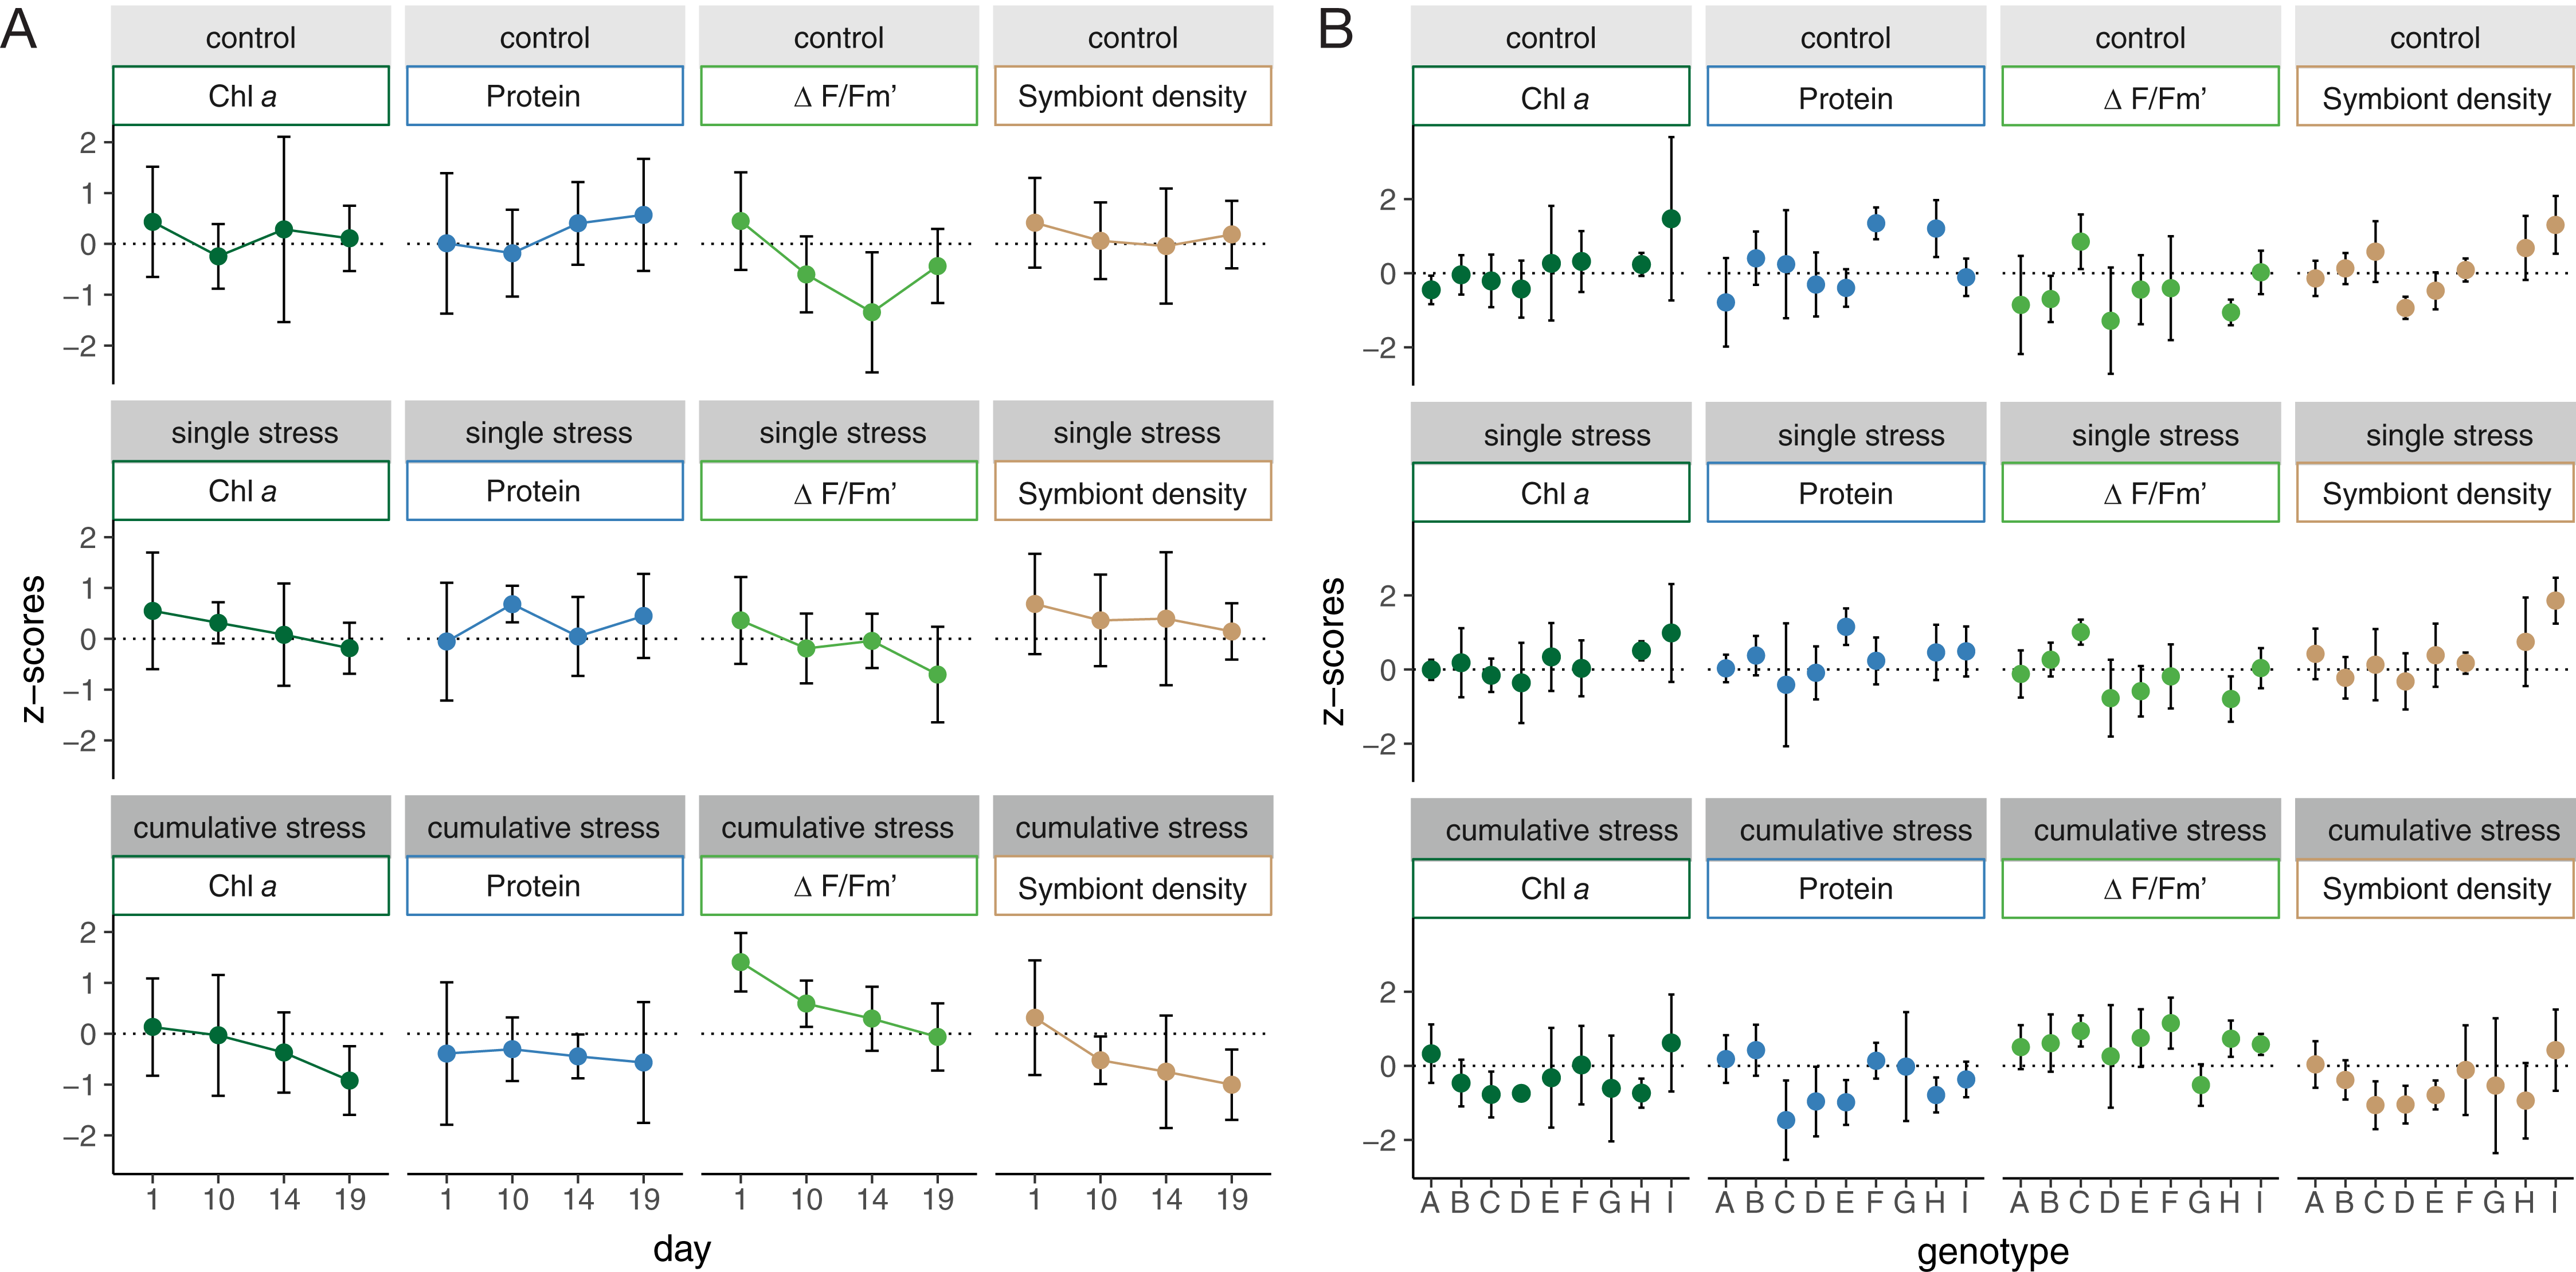 Disentangling the effect of host-genotype and environment on the